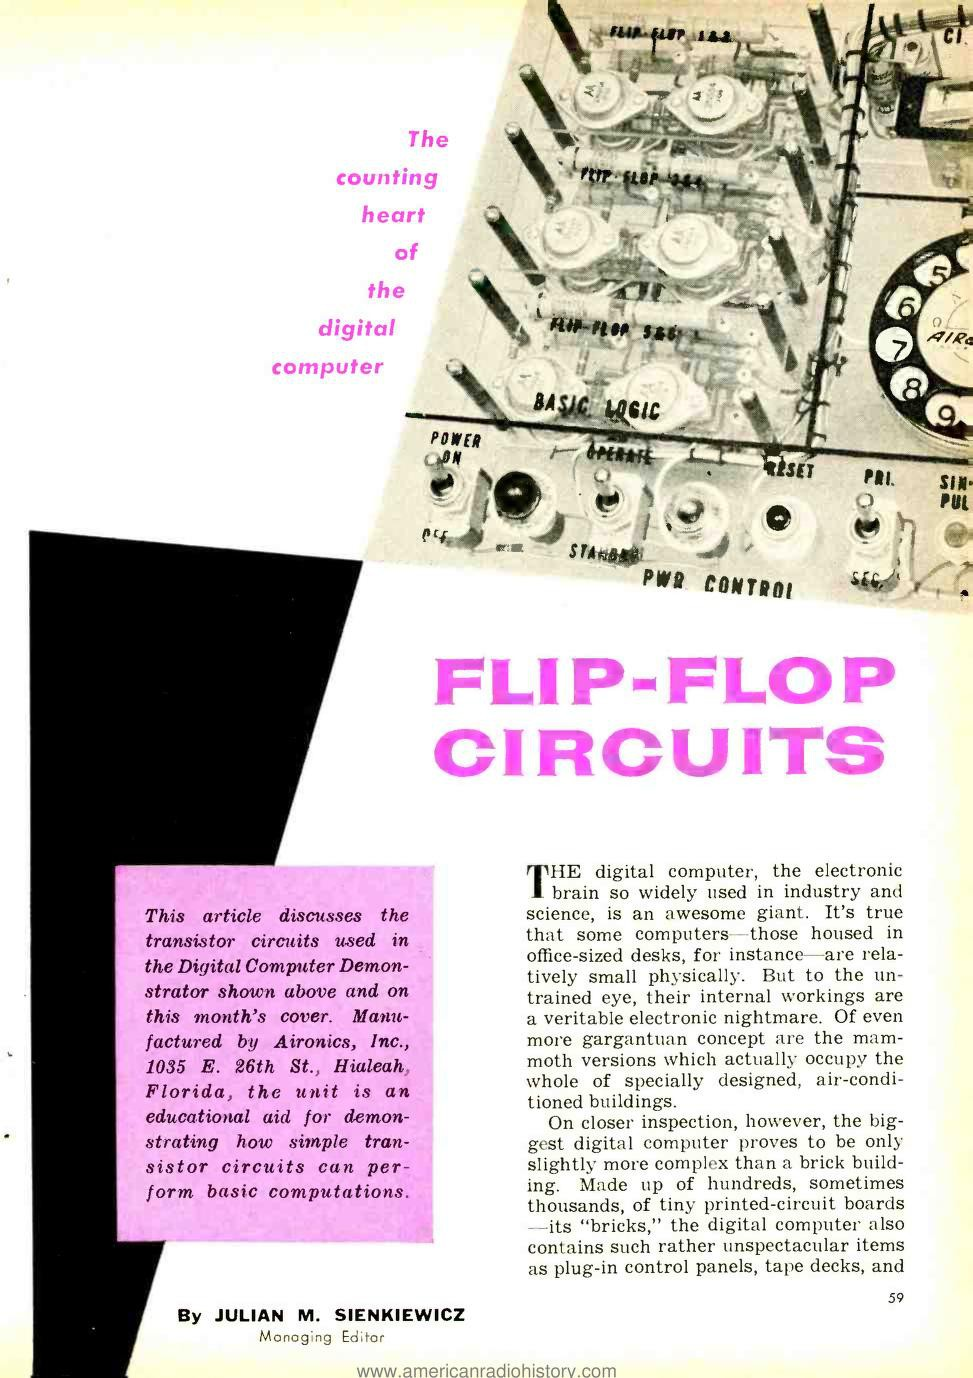 Clockwork Germanium Led Circuit Calculator Http Wwwseekiccom Circuitdiagram Measuring From The Experience With 10tff And Looking At Vintage Circuits I Realise Something About Edge Triggered Flip Flops Only 2 Transistors